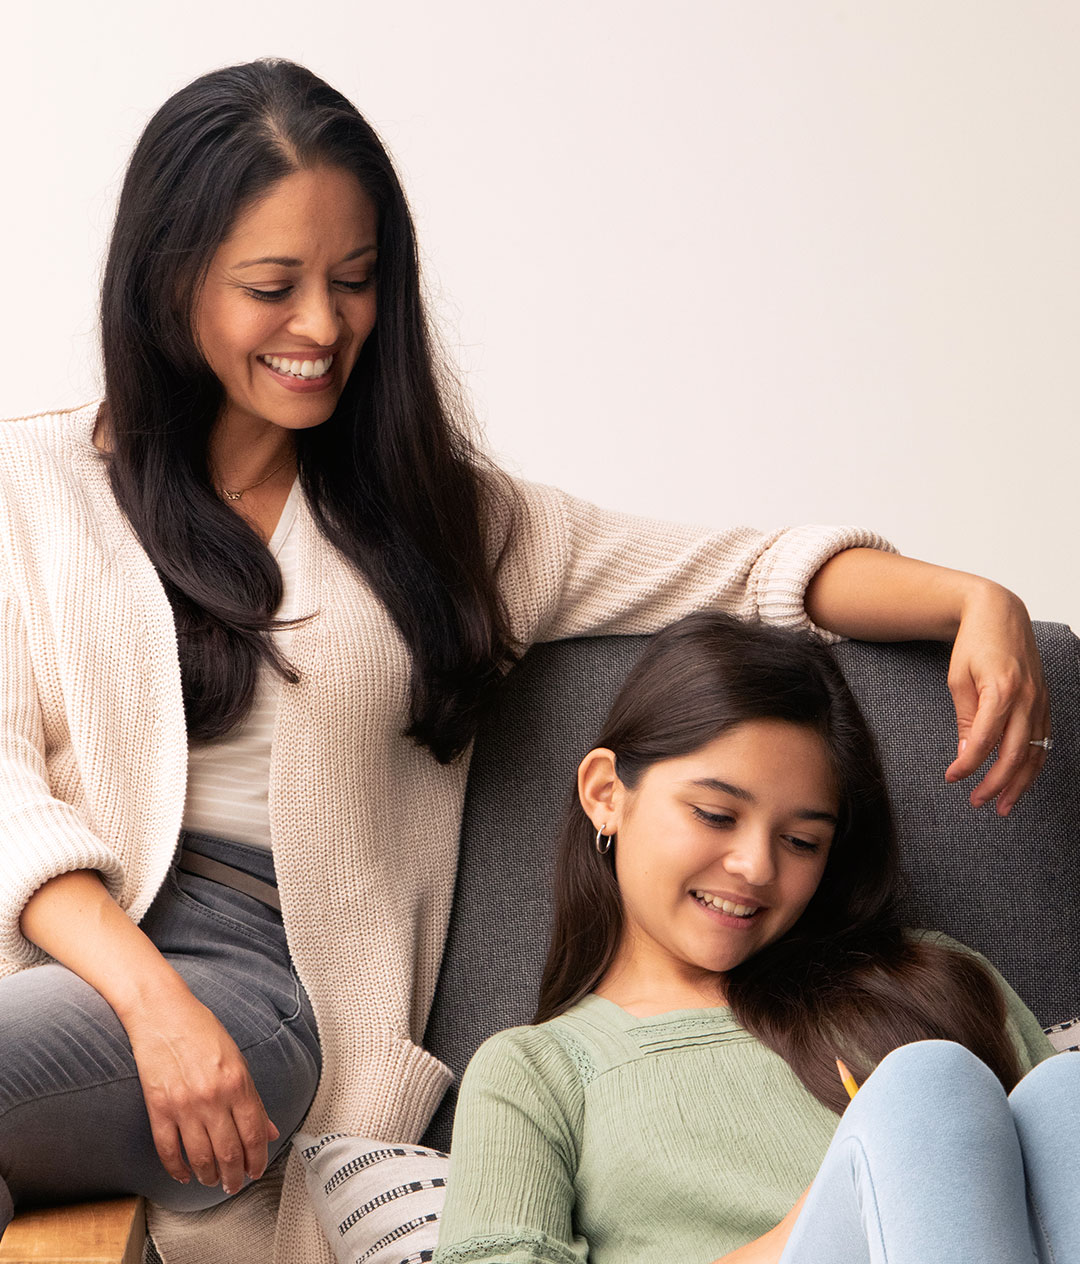 Image of mother and daughter at home sitting on couch